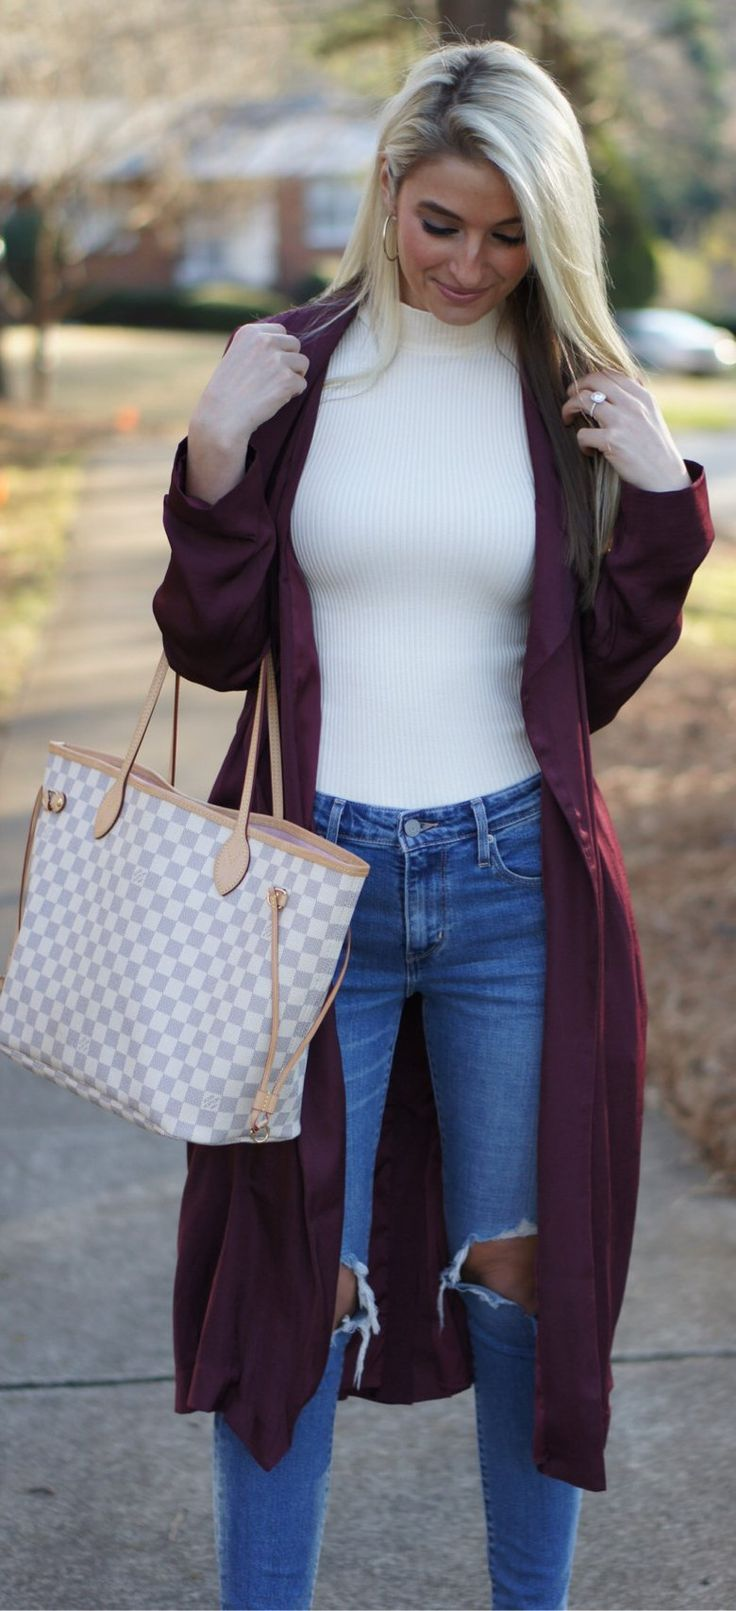 Burgundy Coat / White Turtleneck / Destroyed Skinny Jeans/ White & Grey Checked Tote Bag